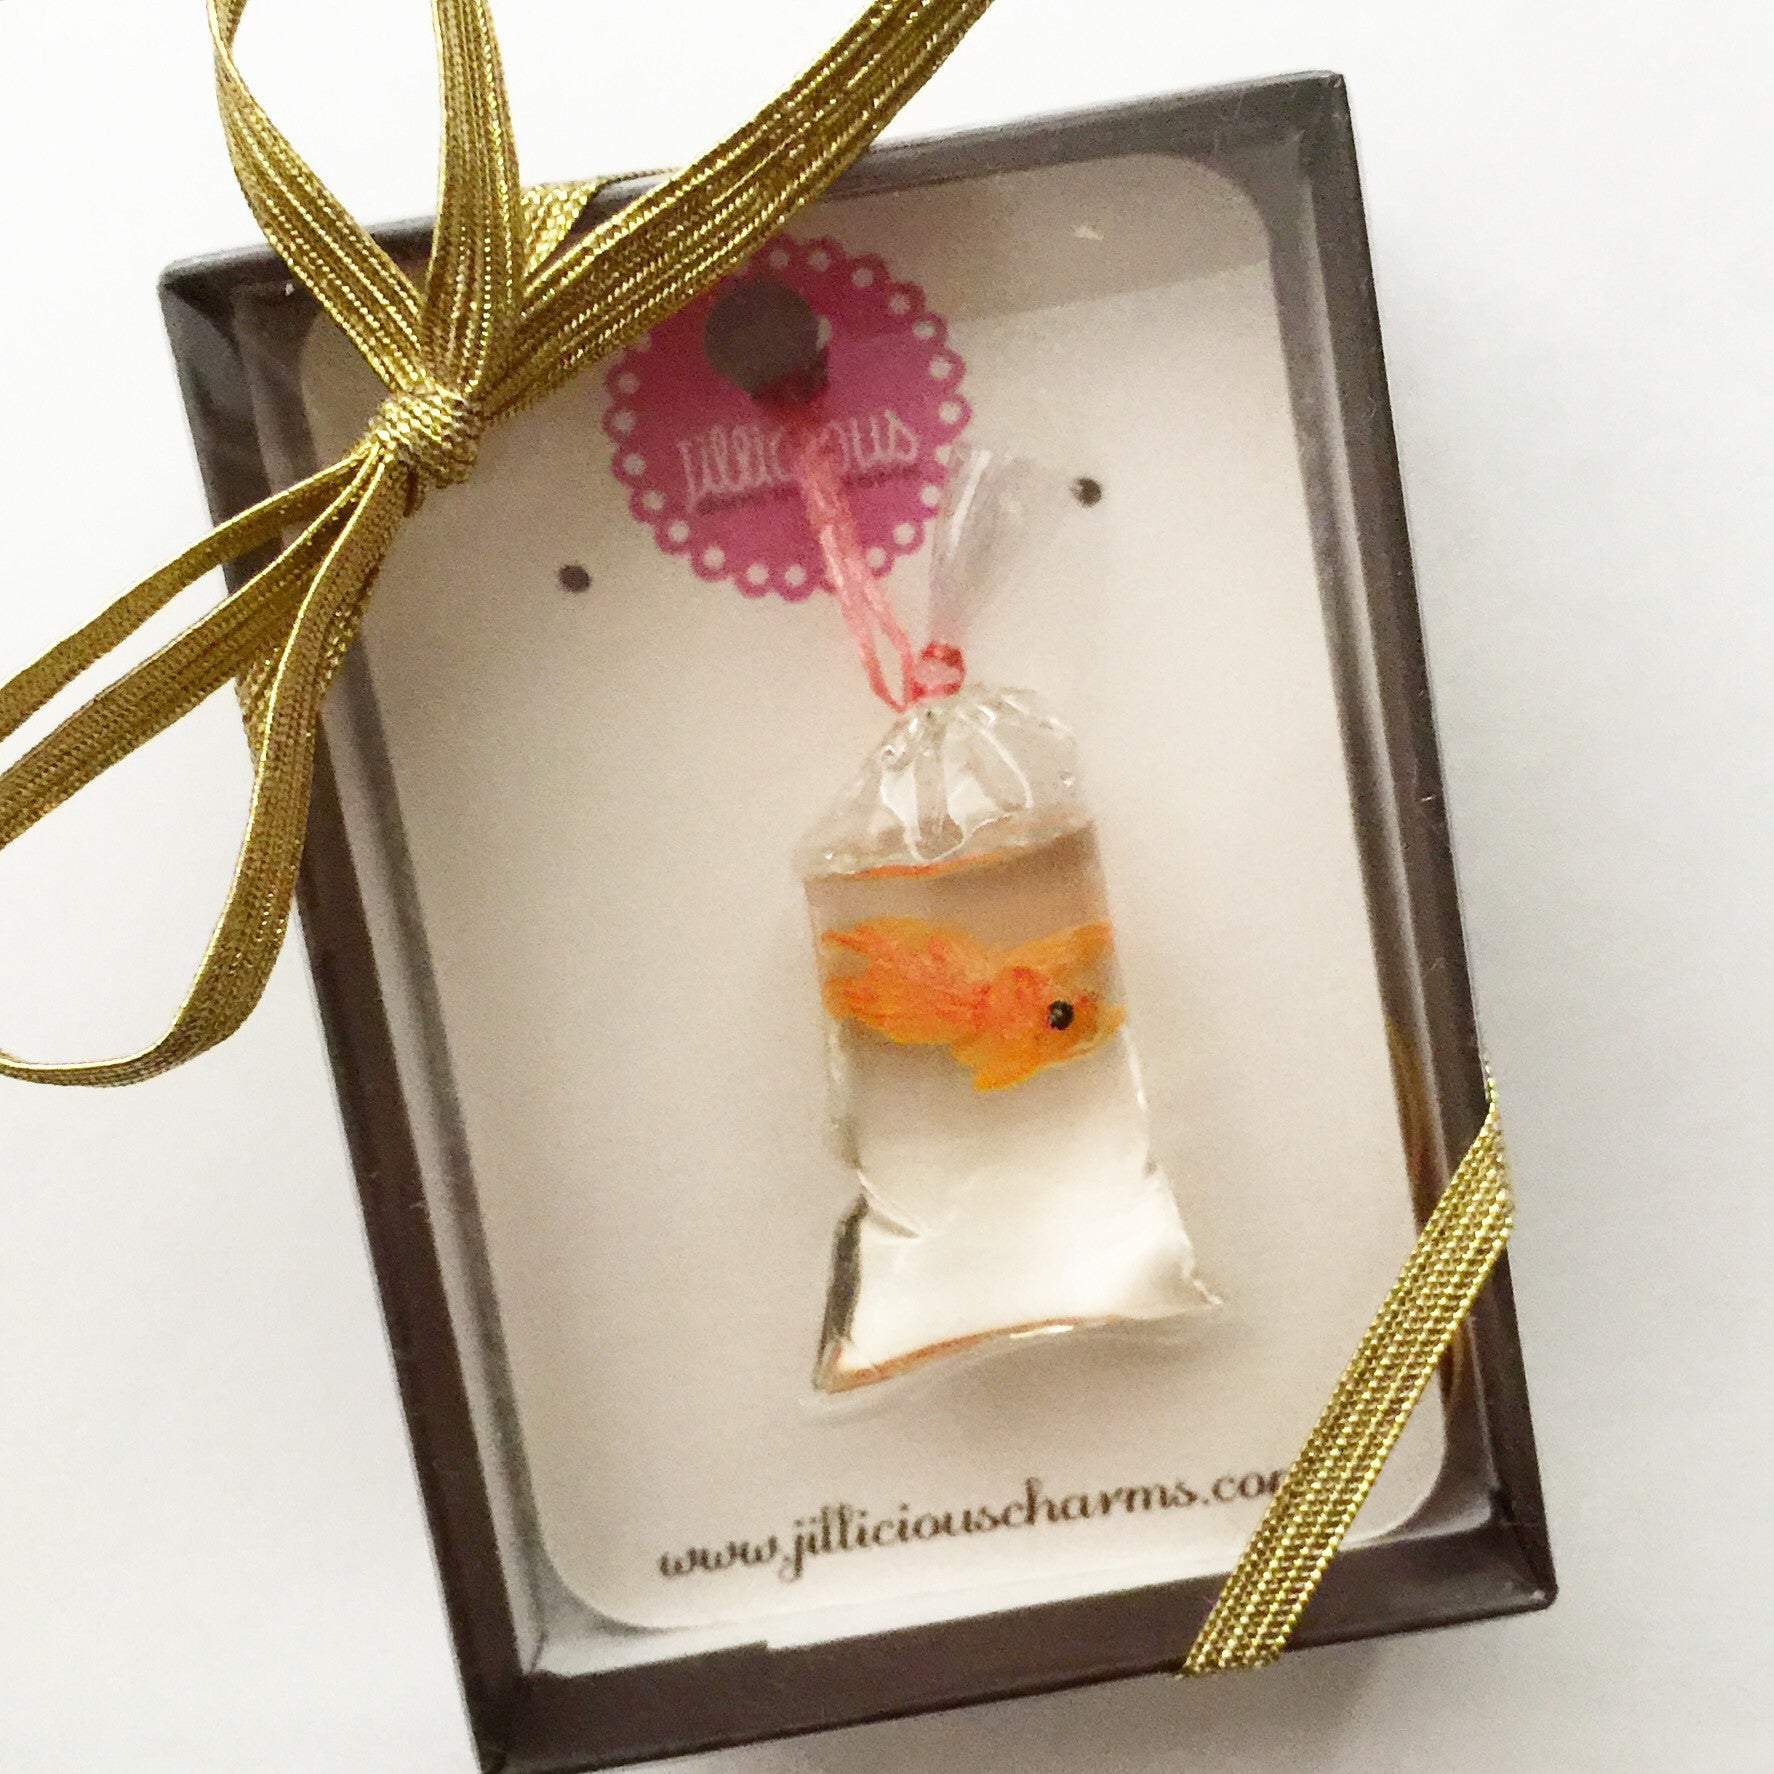 goldfish in a bag keychain/ bag charm - Jillicious charms and accessories